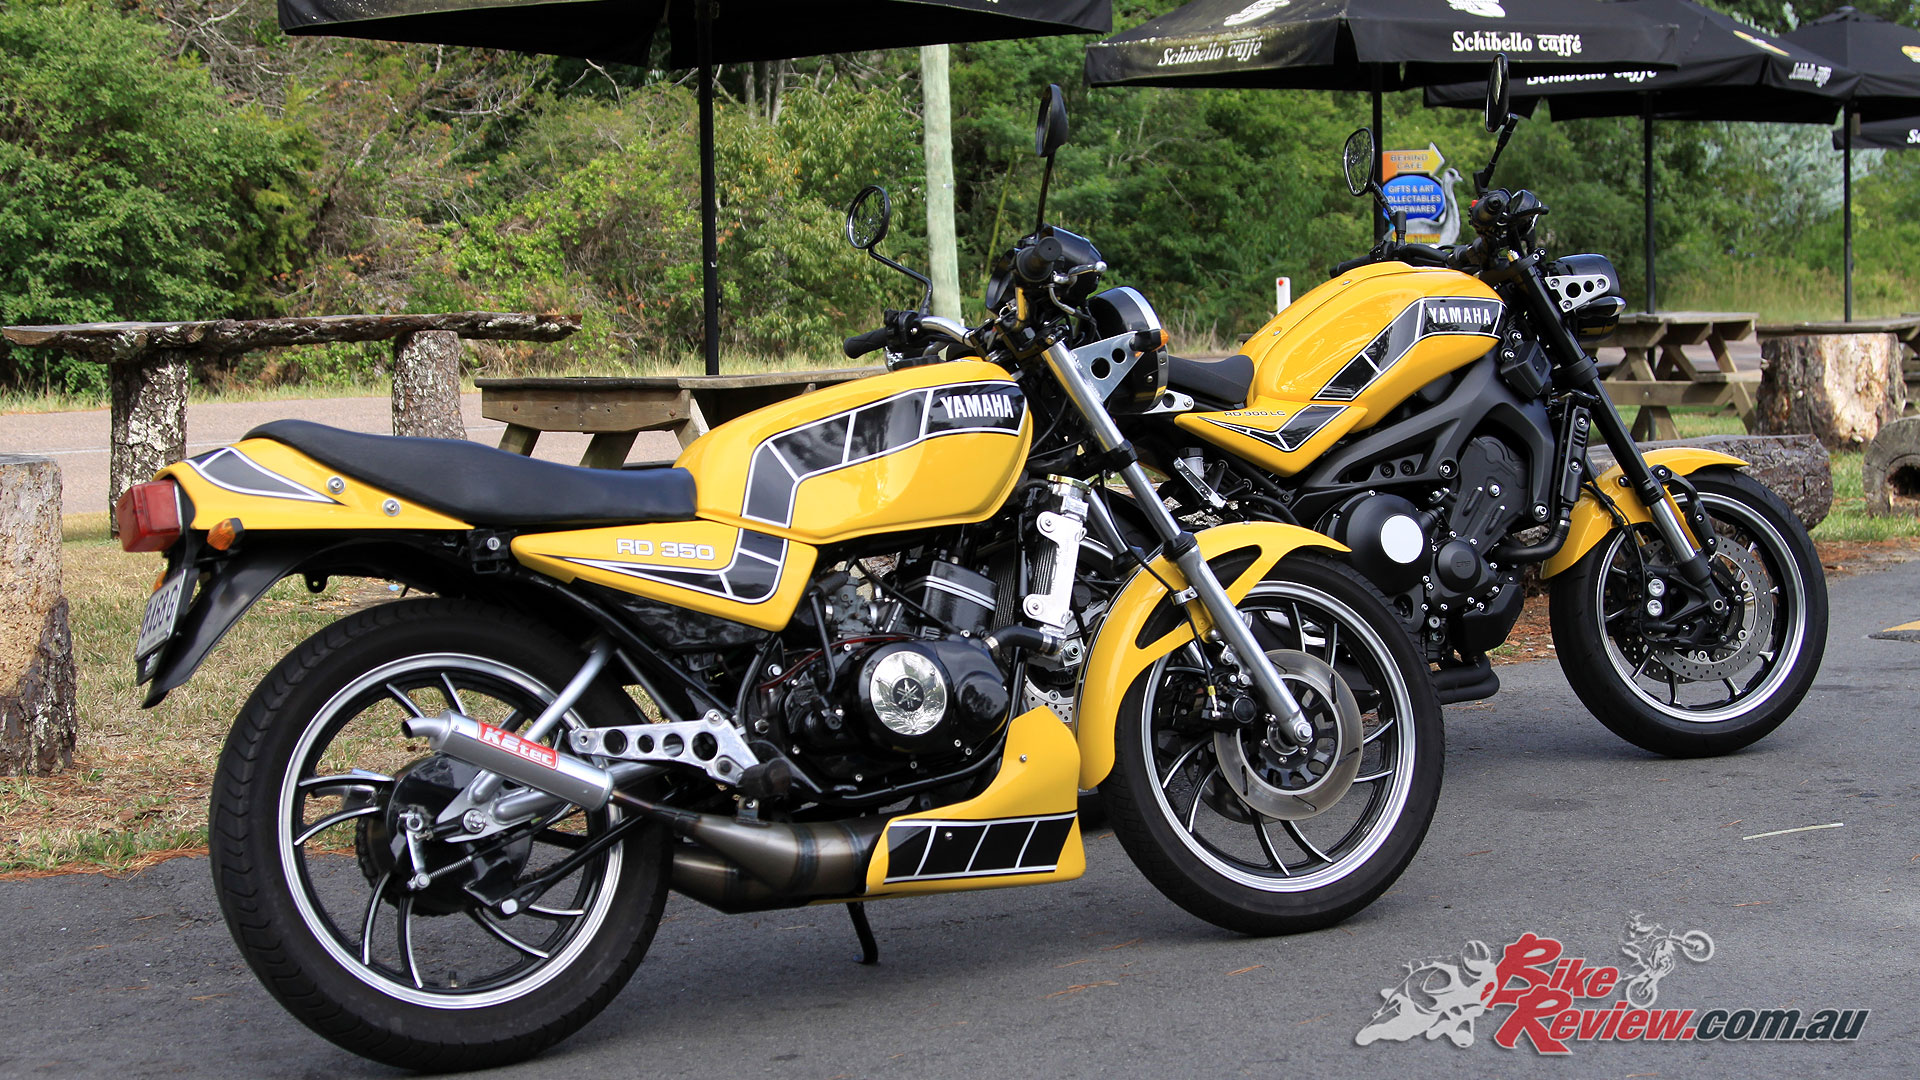 Pommie's restored 1981 Yamaha RD350LC